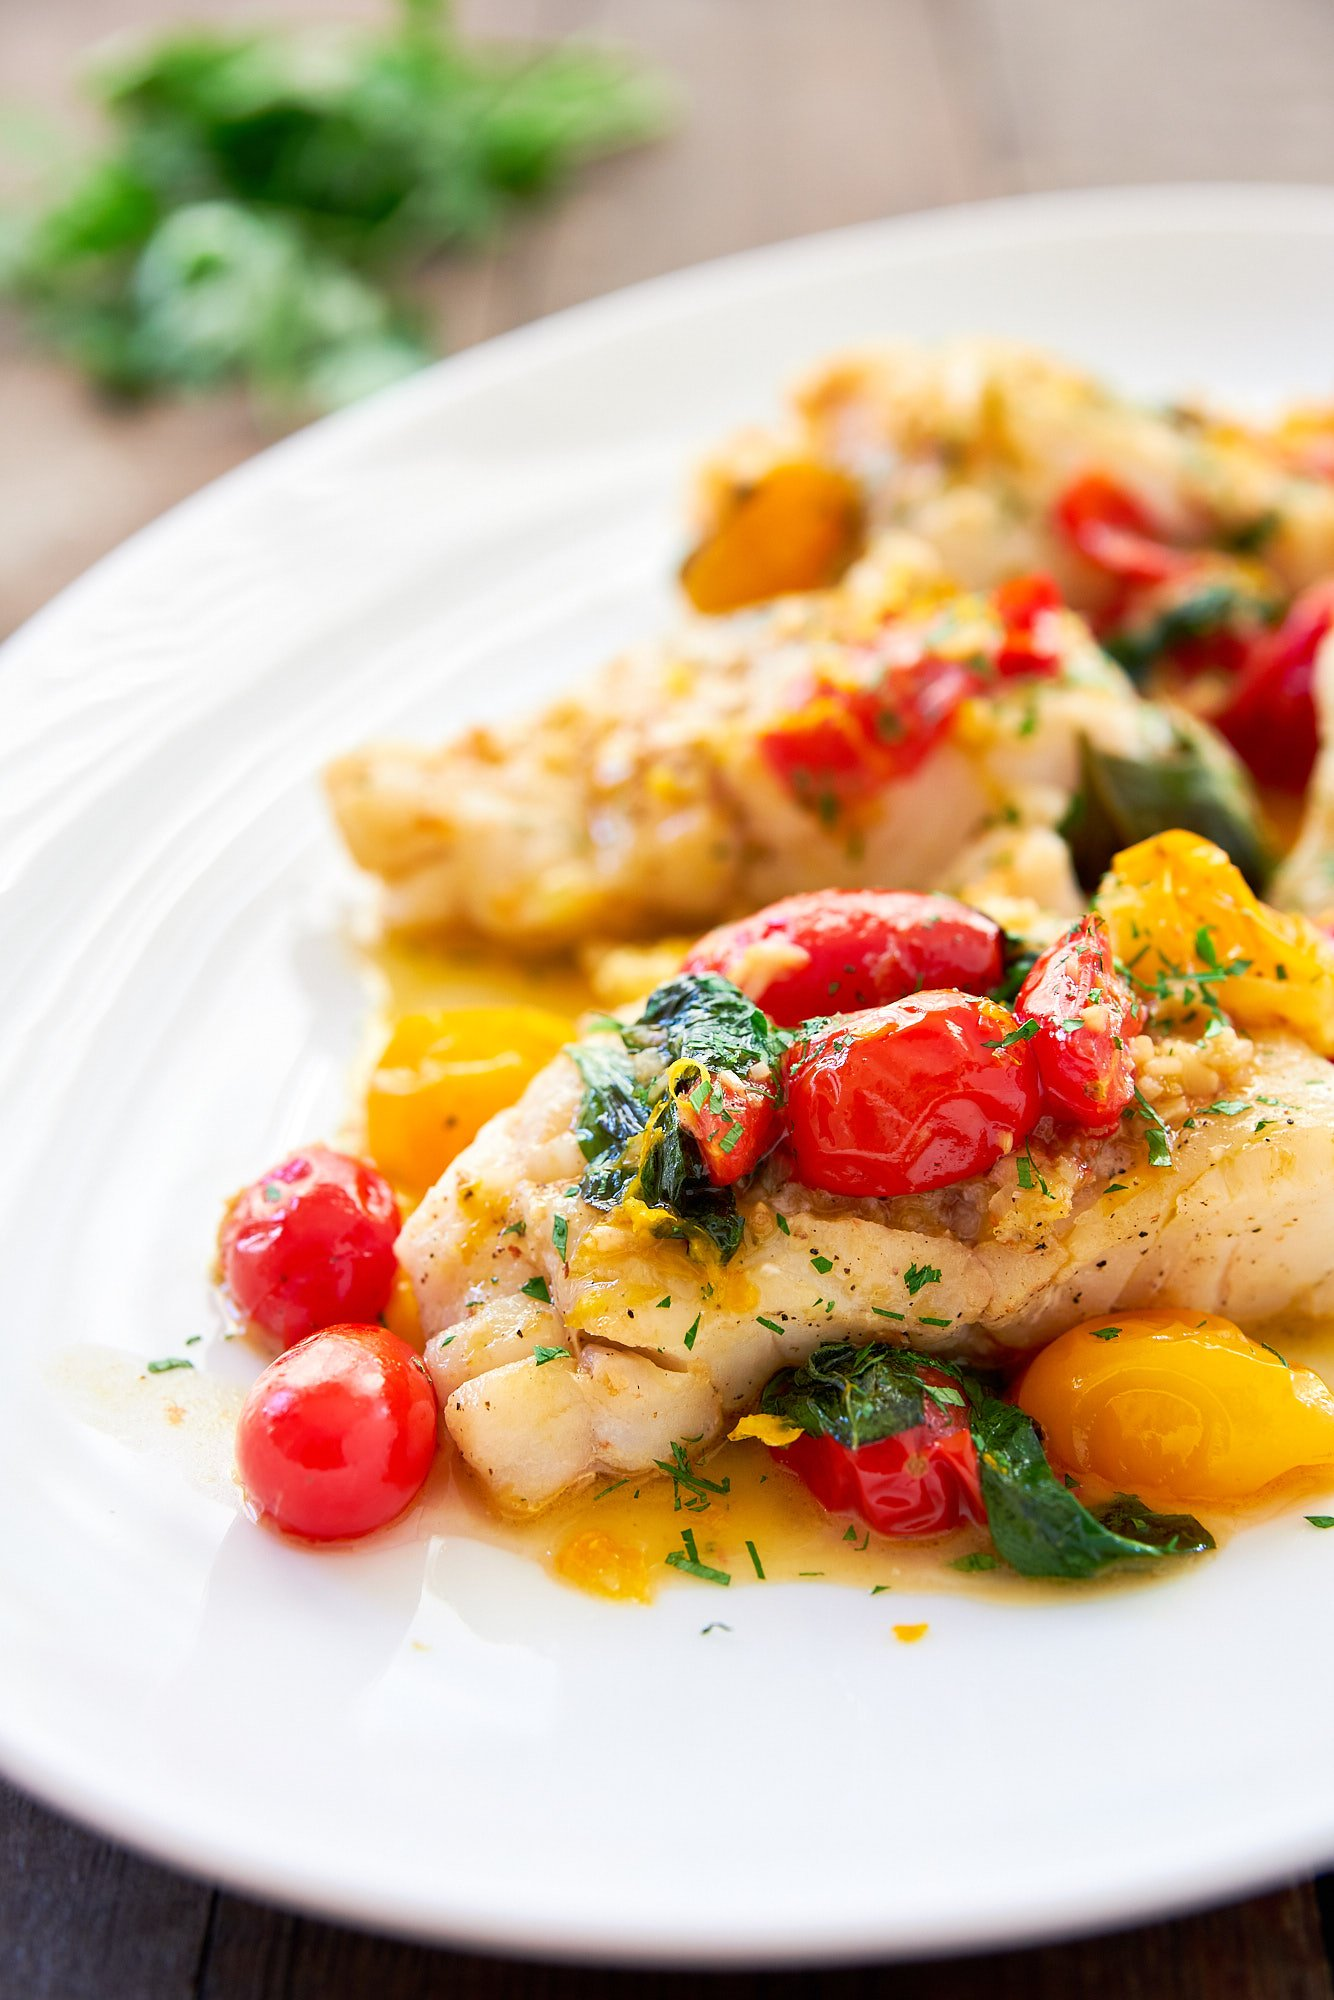 This pan-roasted cod is super easy and delicious! The trick is to make a flavorful pan sauce with cherry tomatoes, basil and white wine.